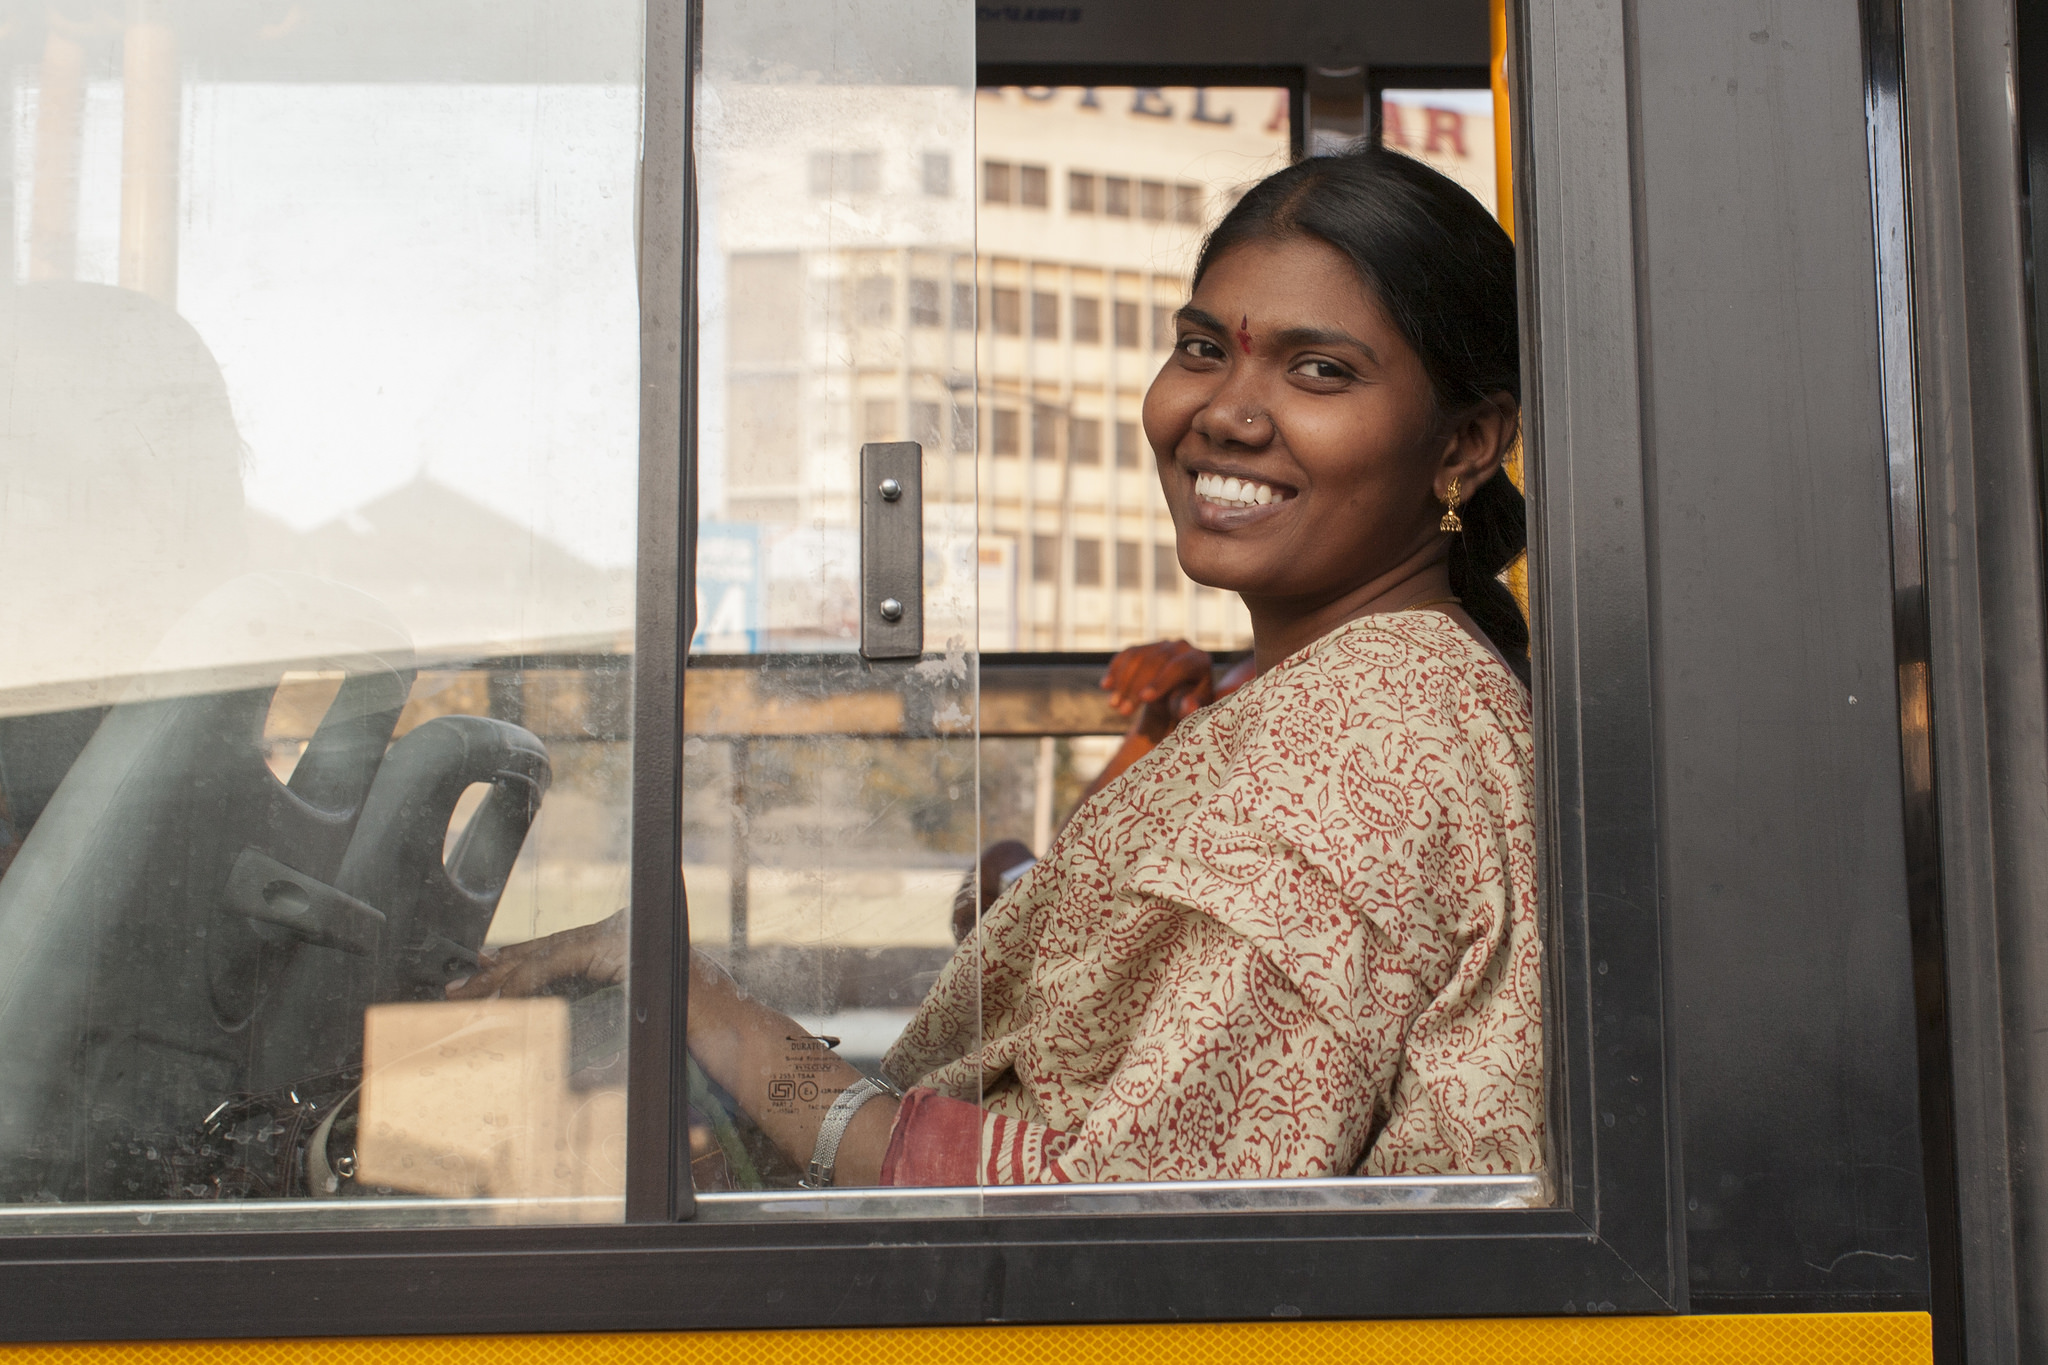 BIG Bus: People-oriented sustainable transport for Bangalore